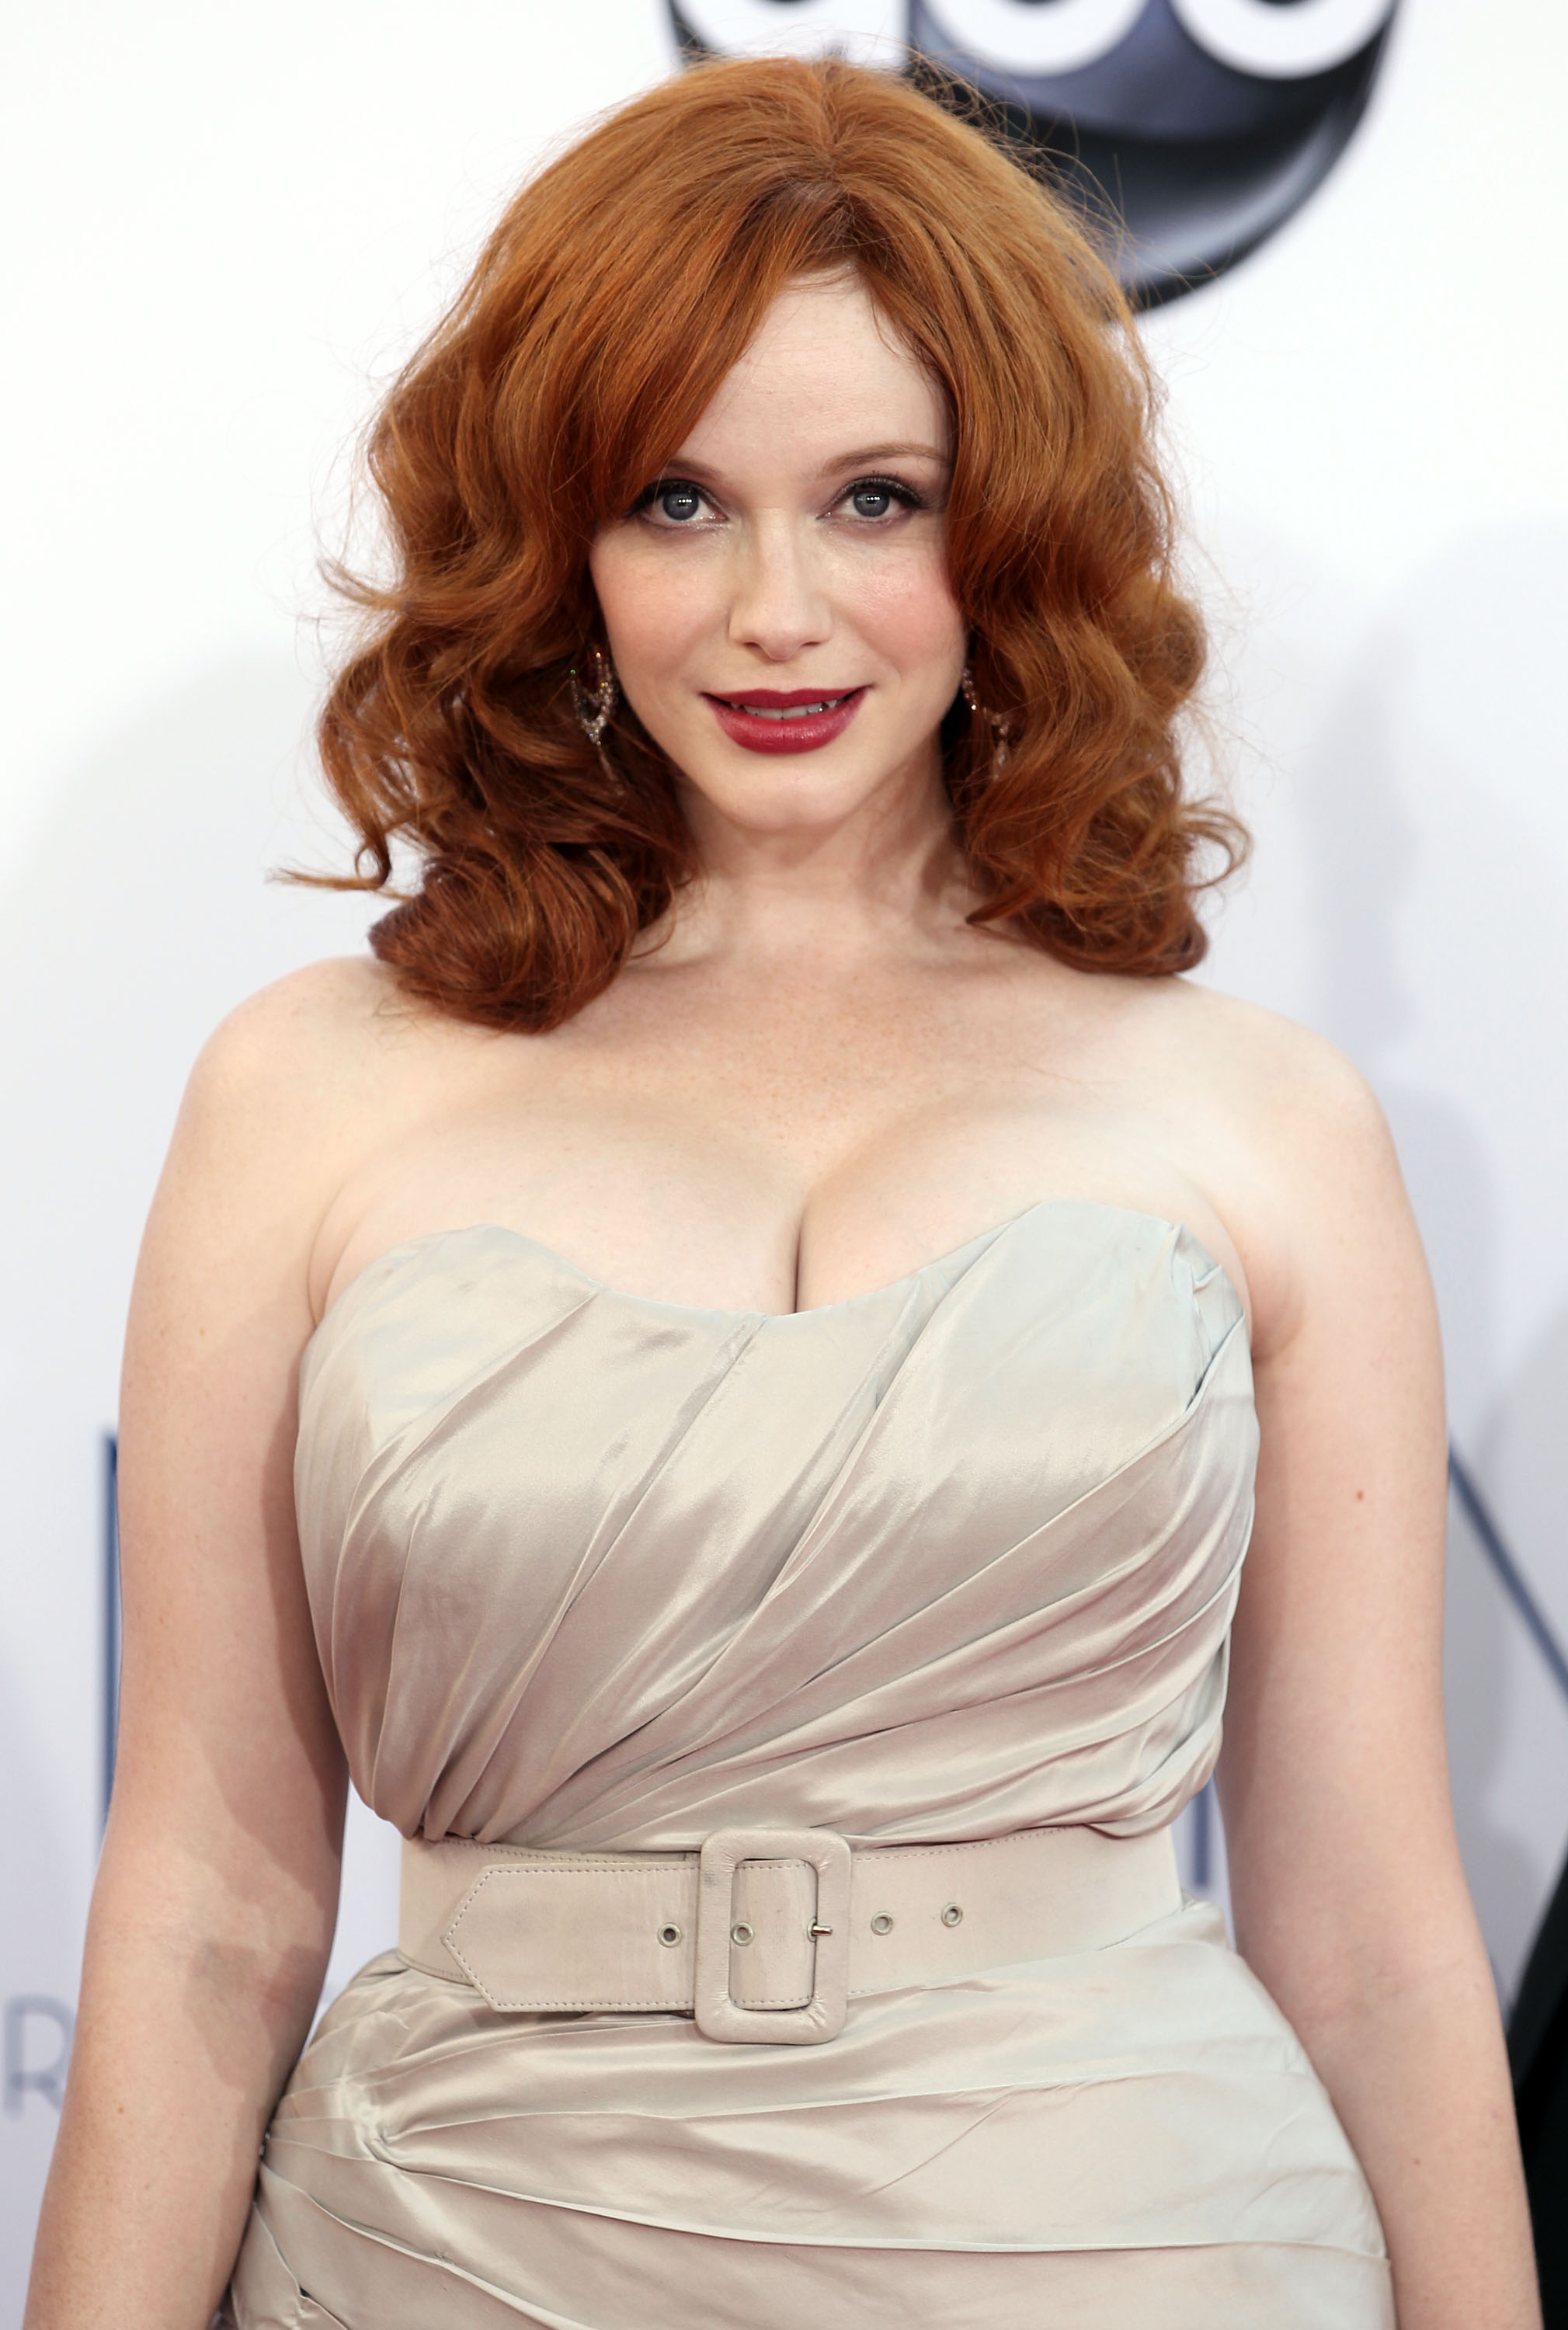 christina-hendricks-sexy-stills